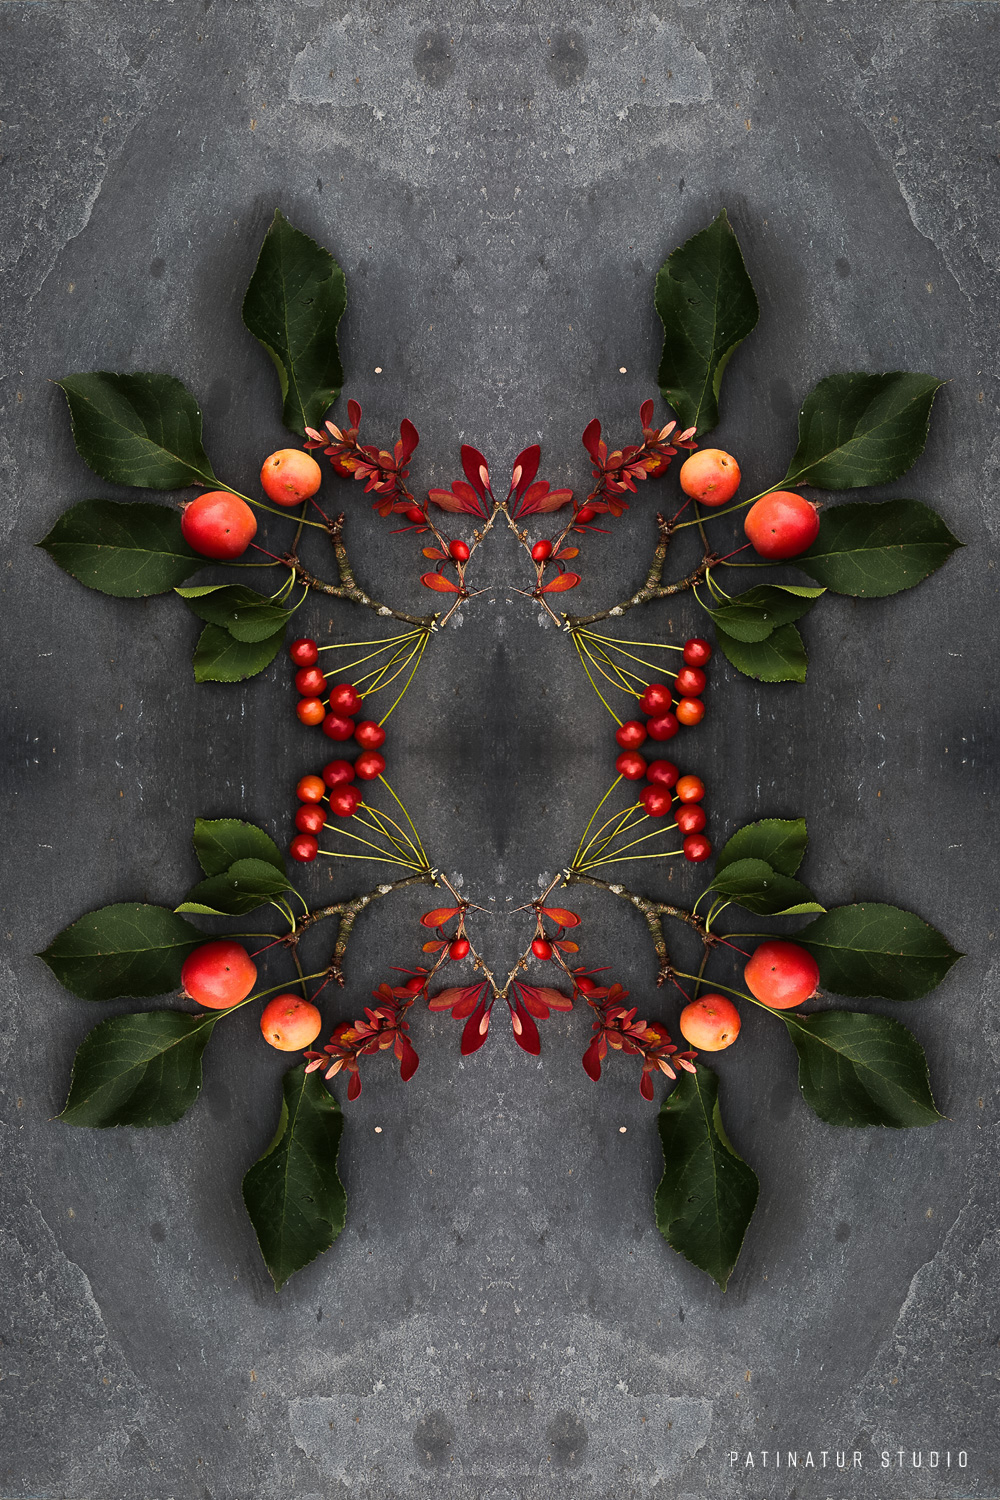 Photo art | Botanical caleidoscope in orange and red